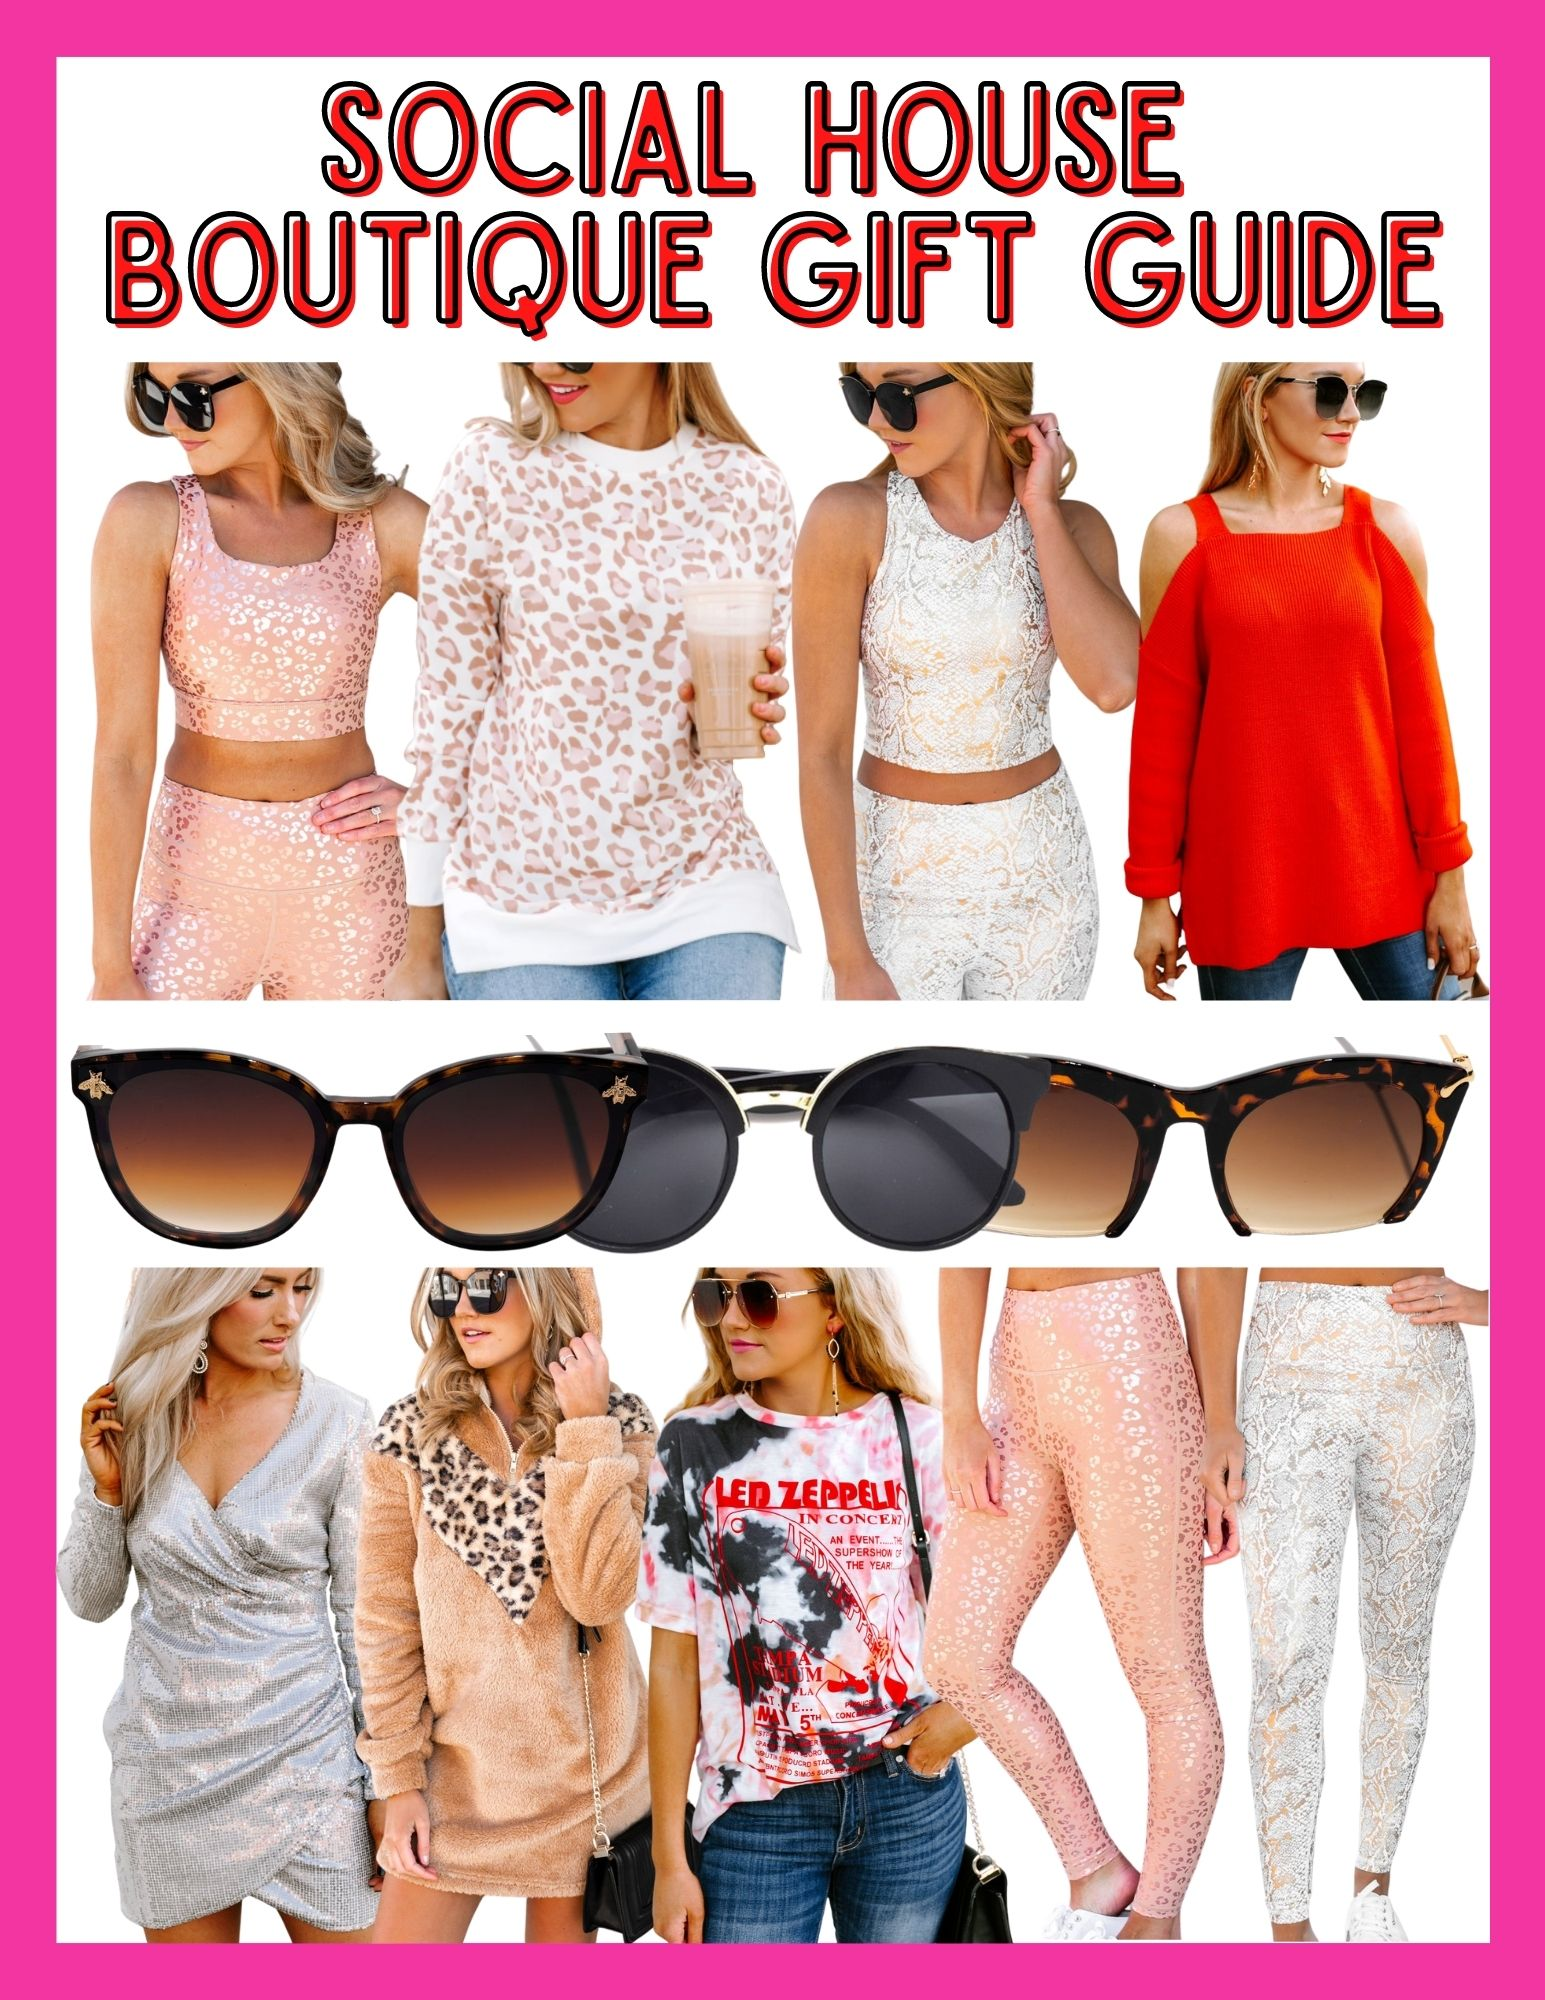 Social House Boutique Gift Guide